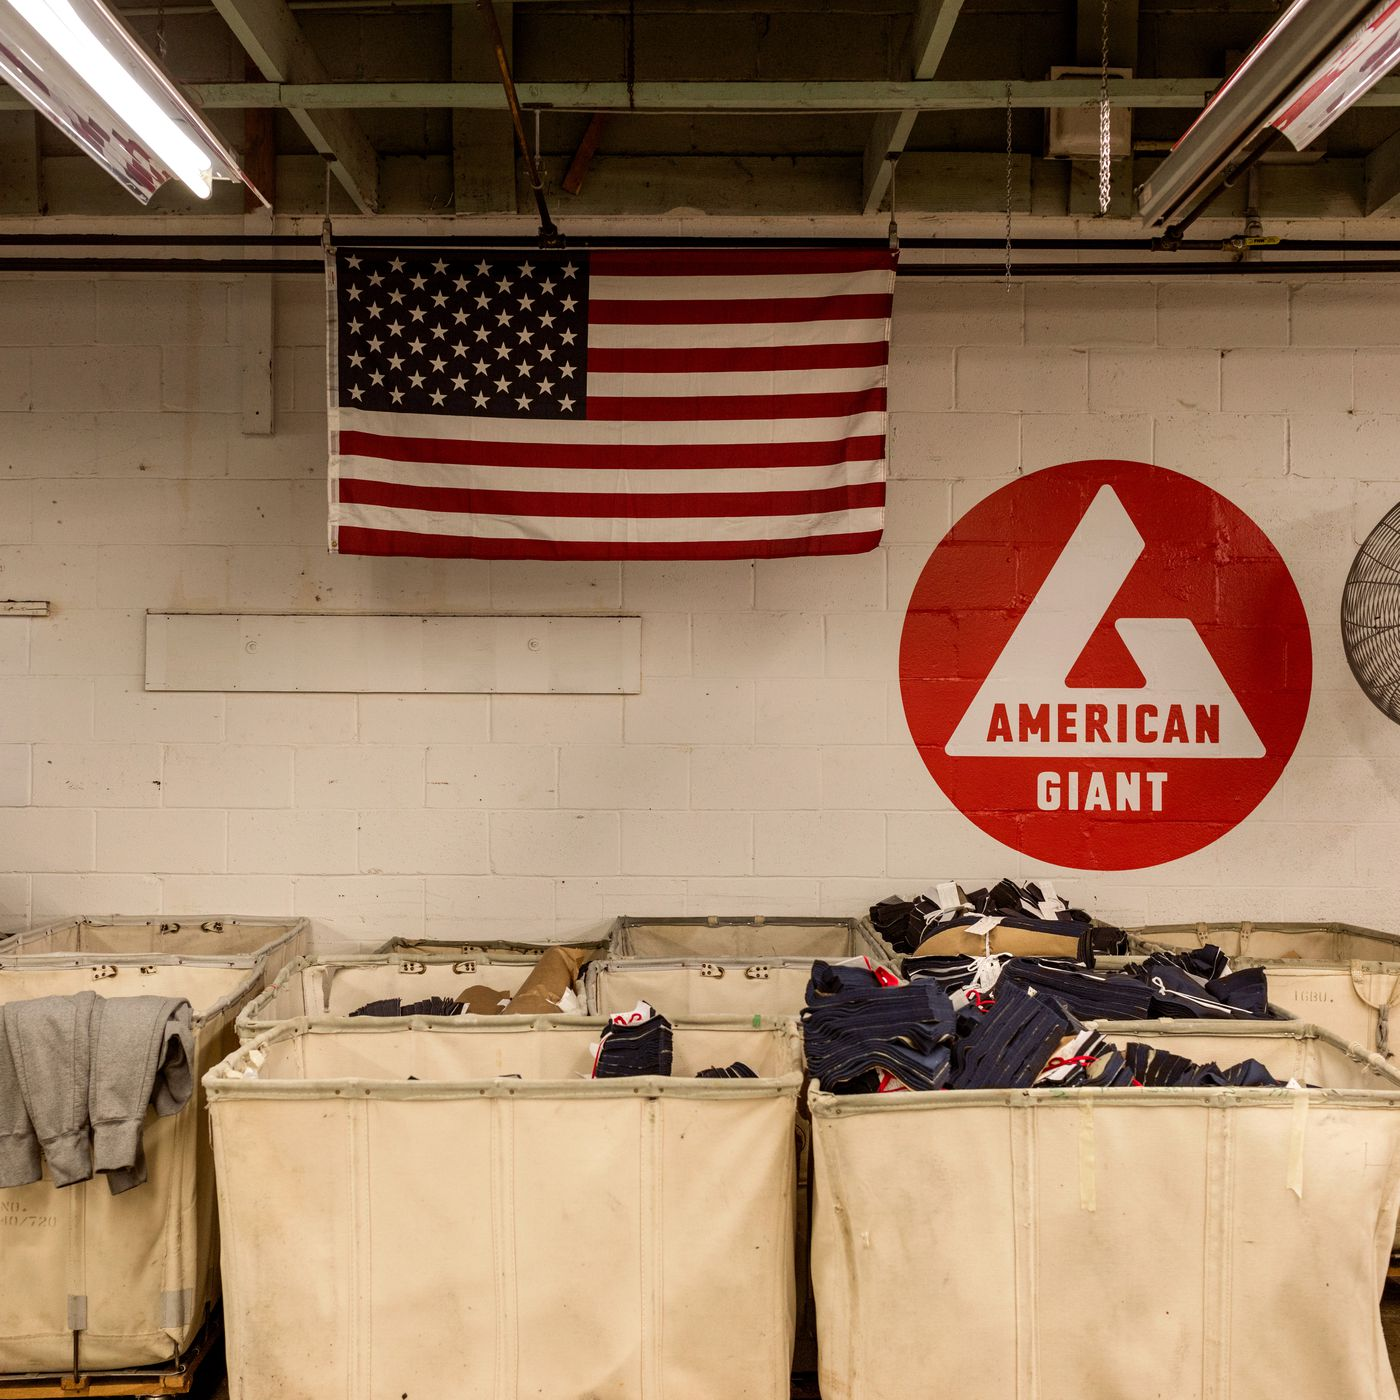 American Giants Hoodie Cant Save Us Manufacturing By Itself Vox